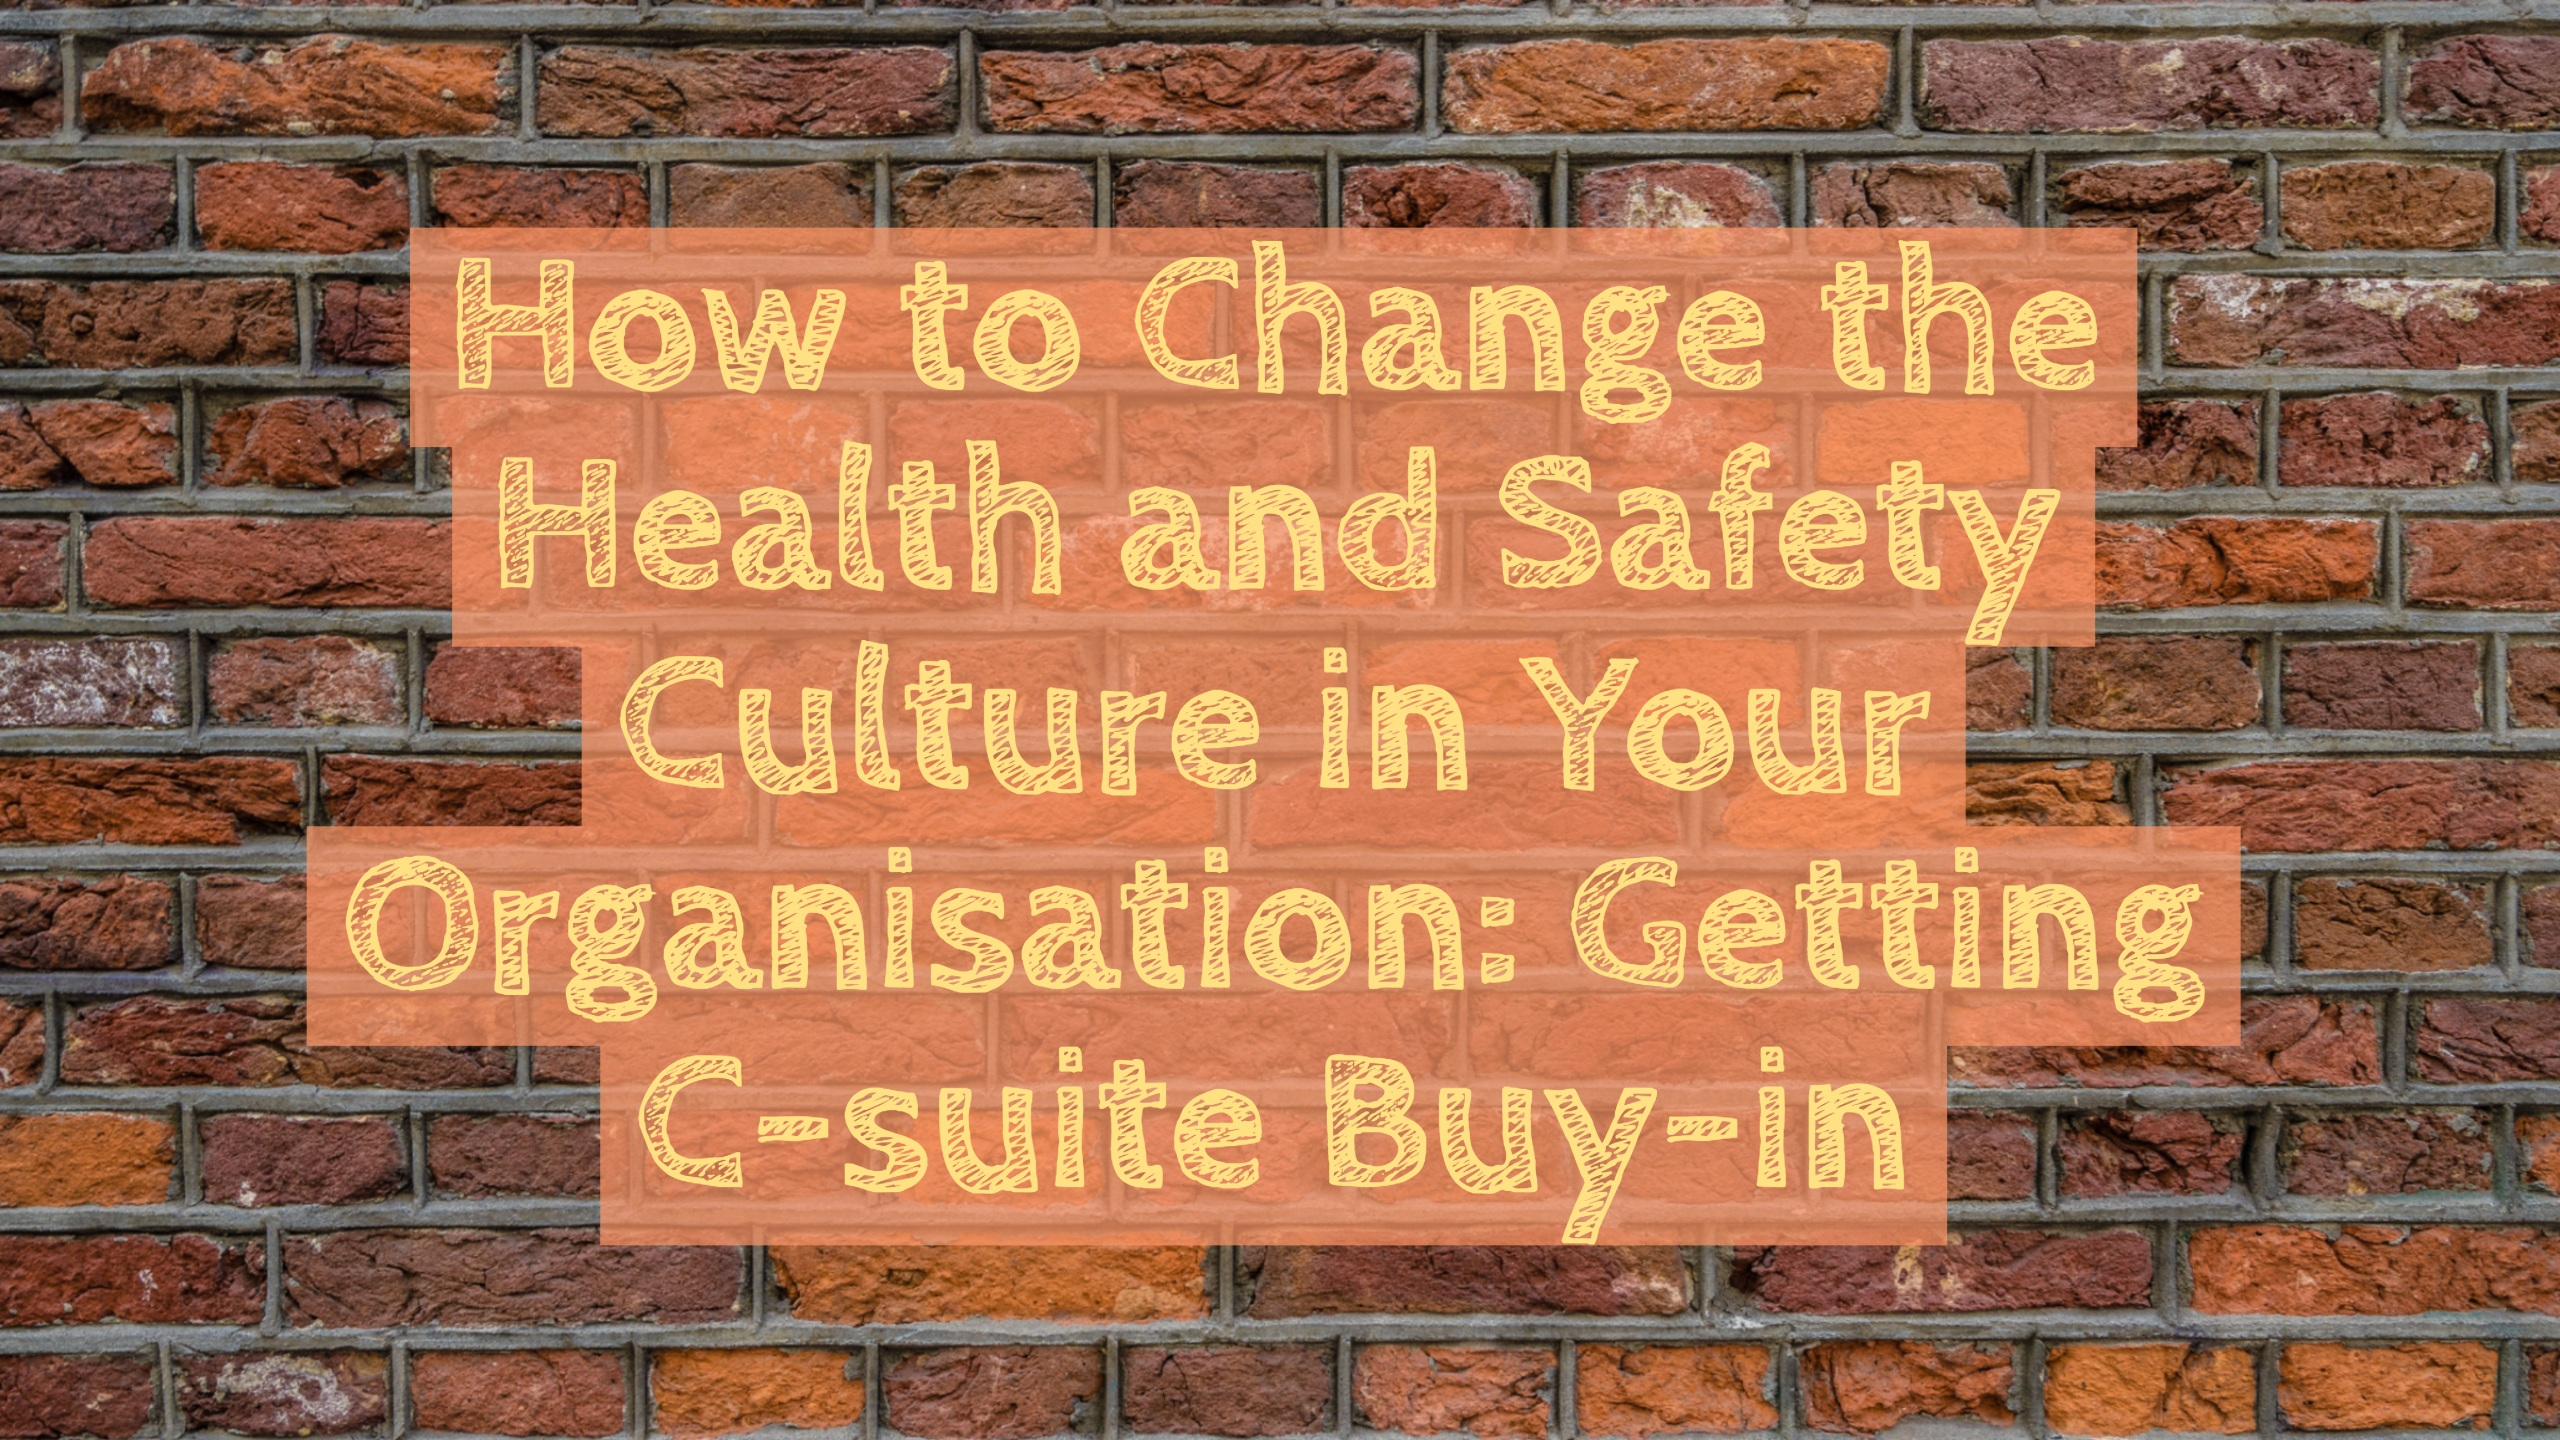 e-permits webinar series - getting c-suite buy-in to improve health and safety culture